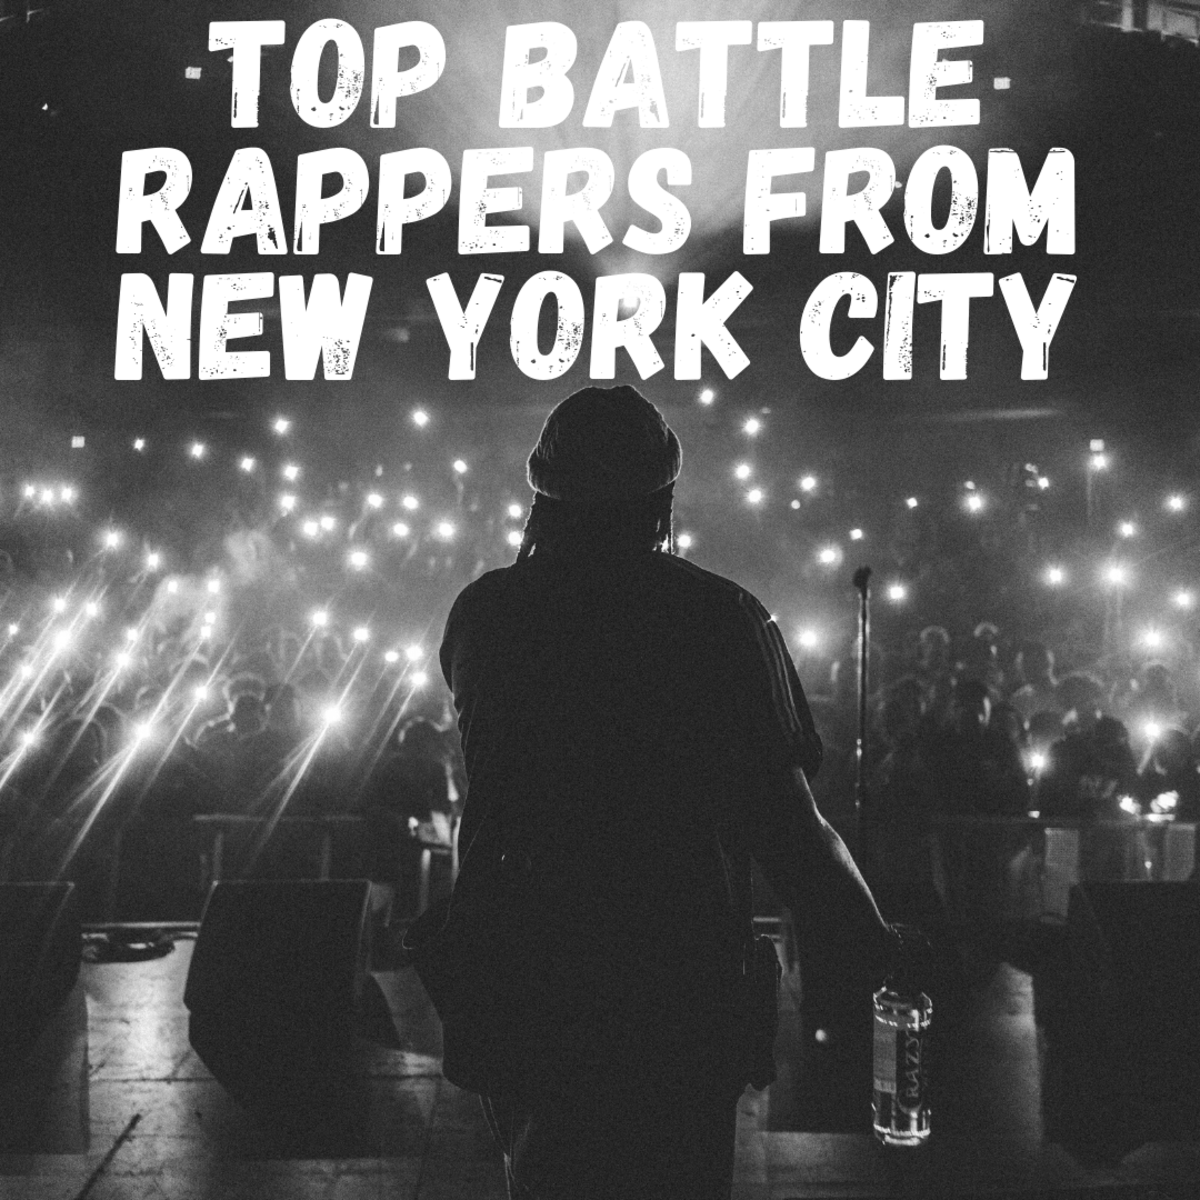 New York City is home to a lot of battle rap legends. Read on to see who are the best in the game.